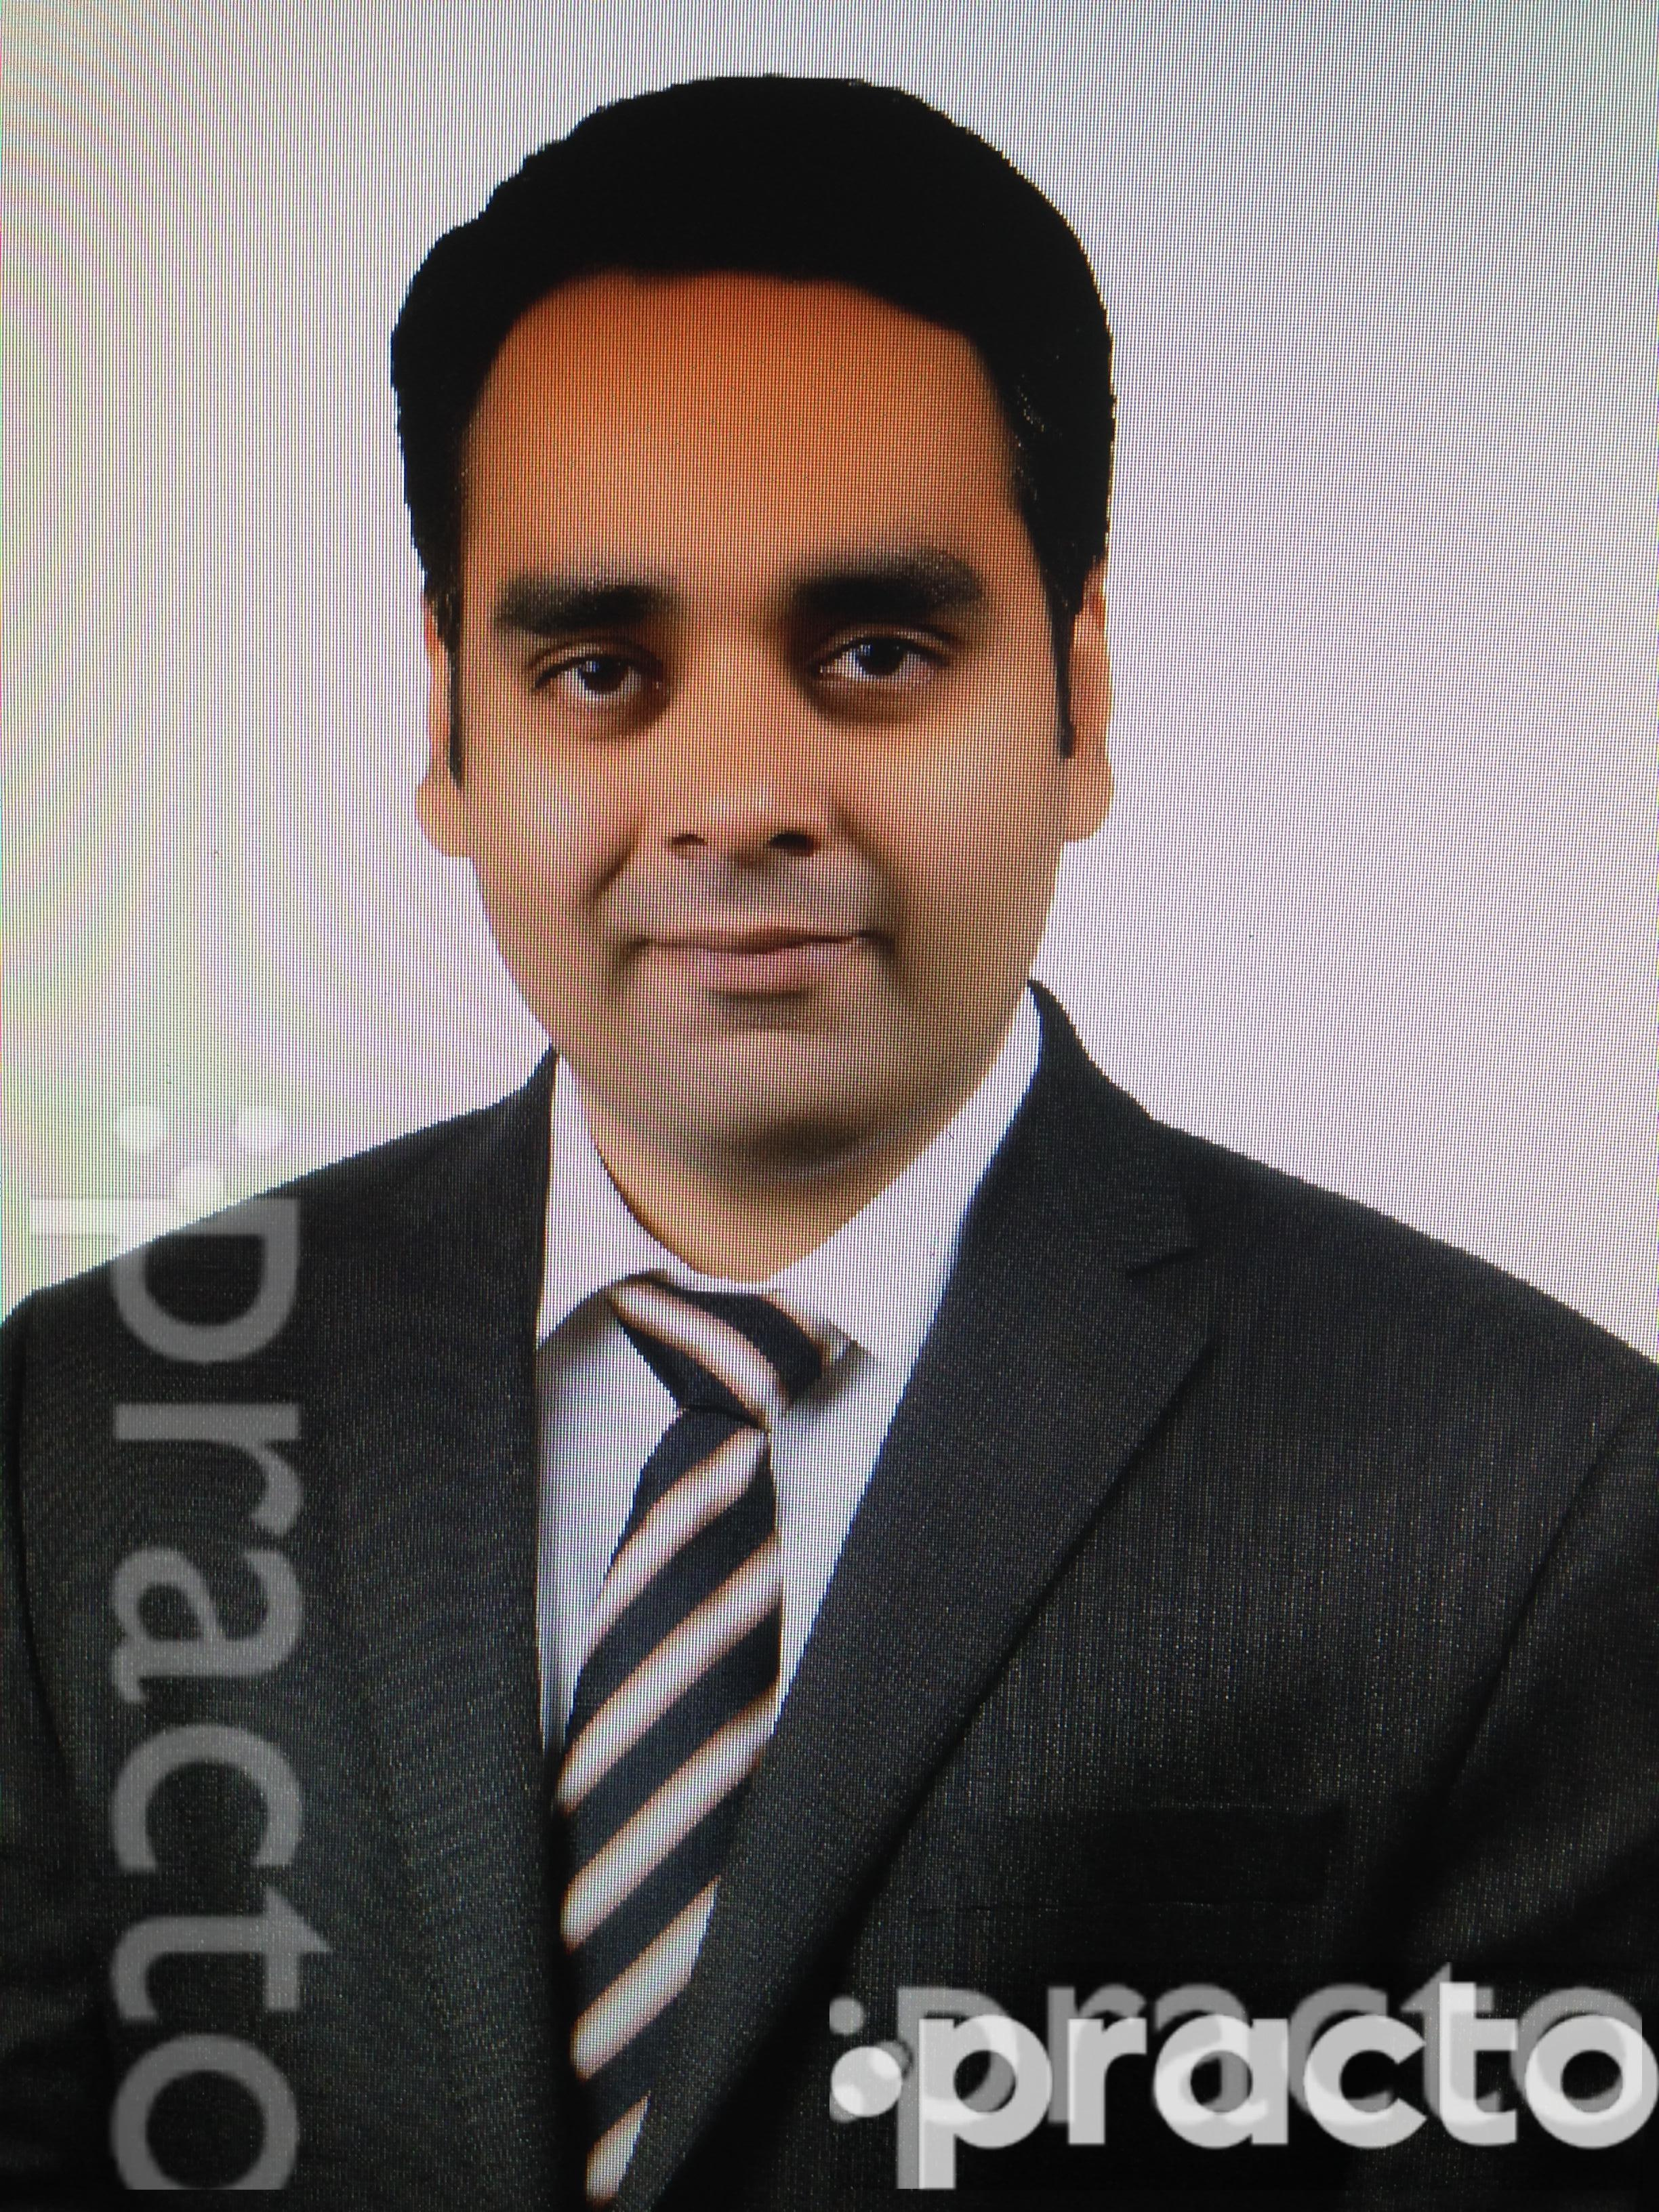 Dr. Deepak Joshi - Spine Surgeon